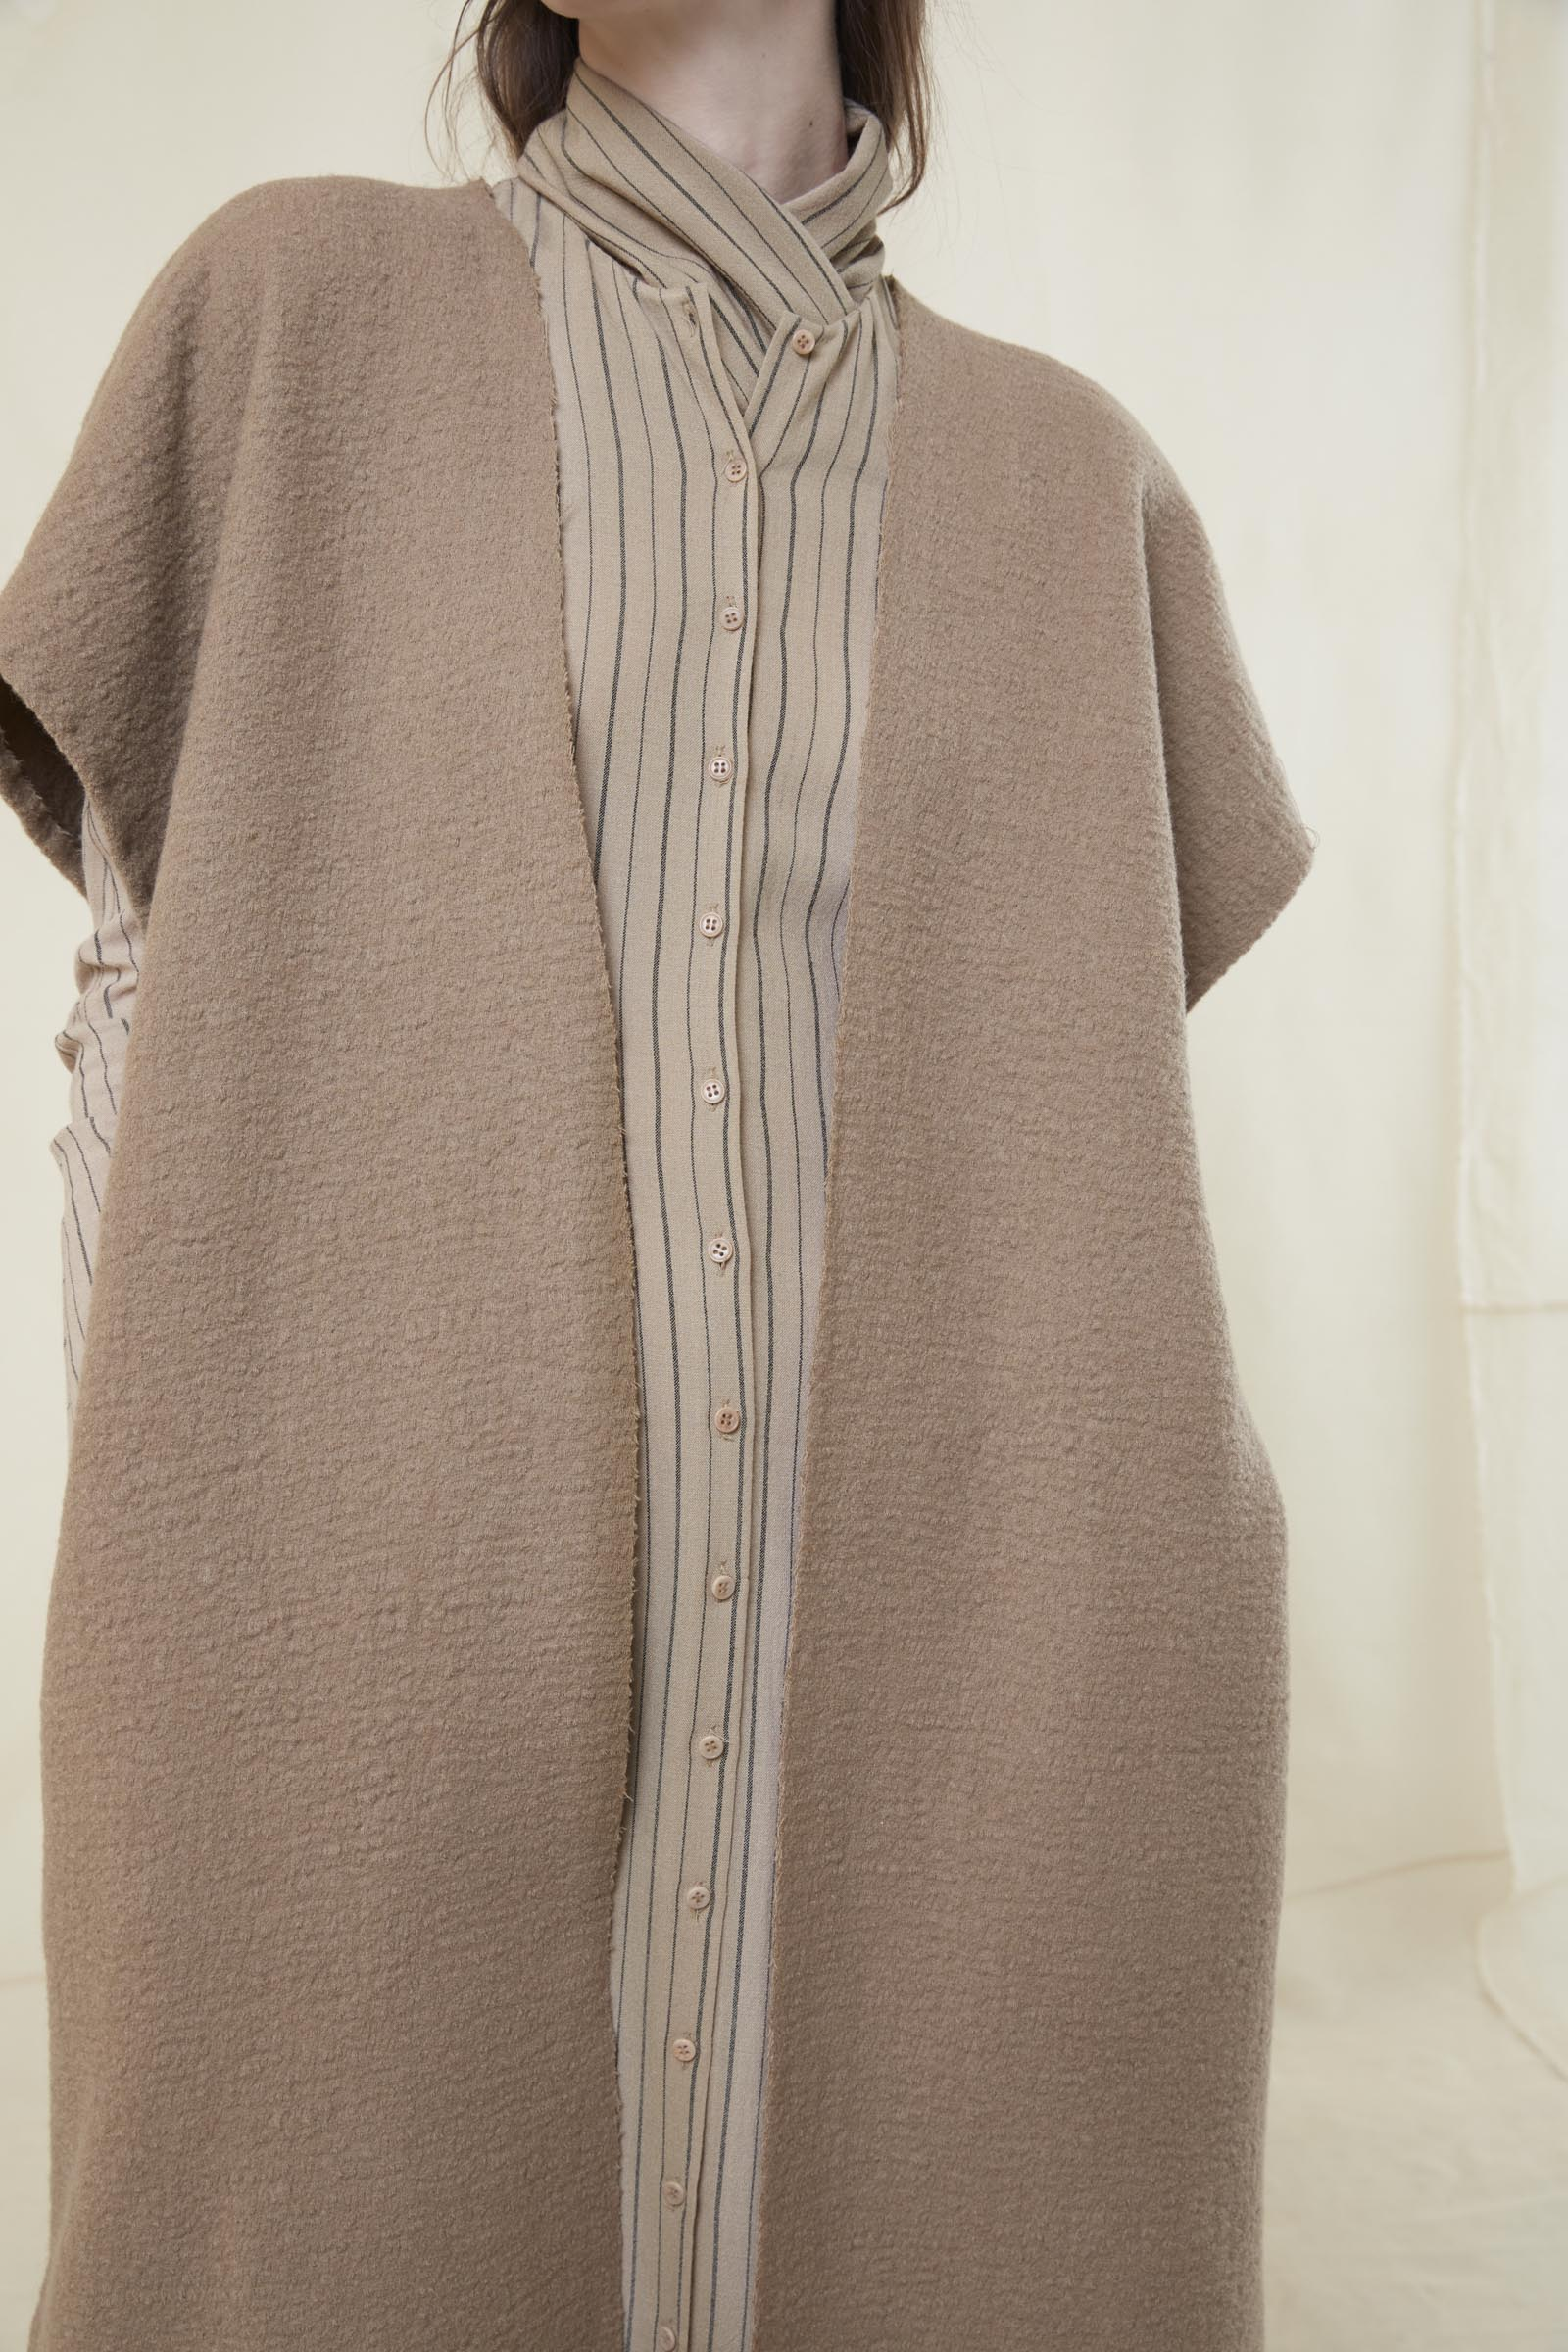 RAMPA, MERINO WOOL COAT - Cortana